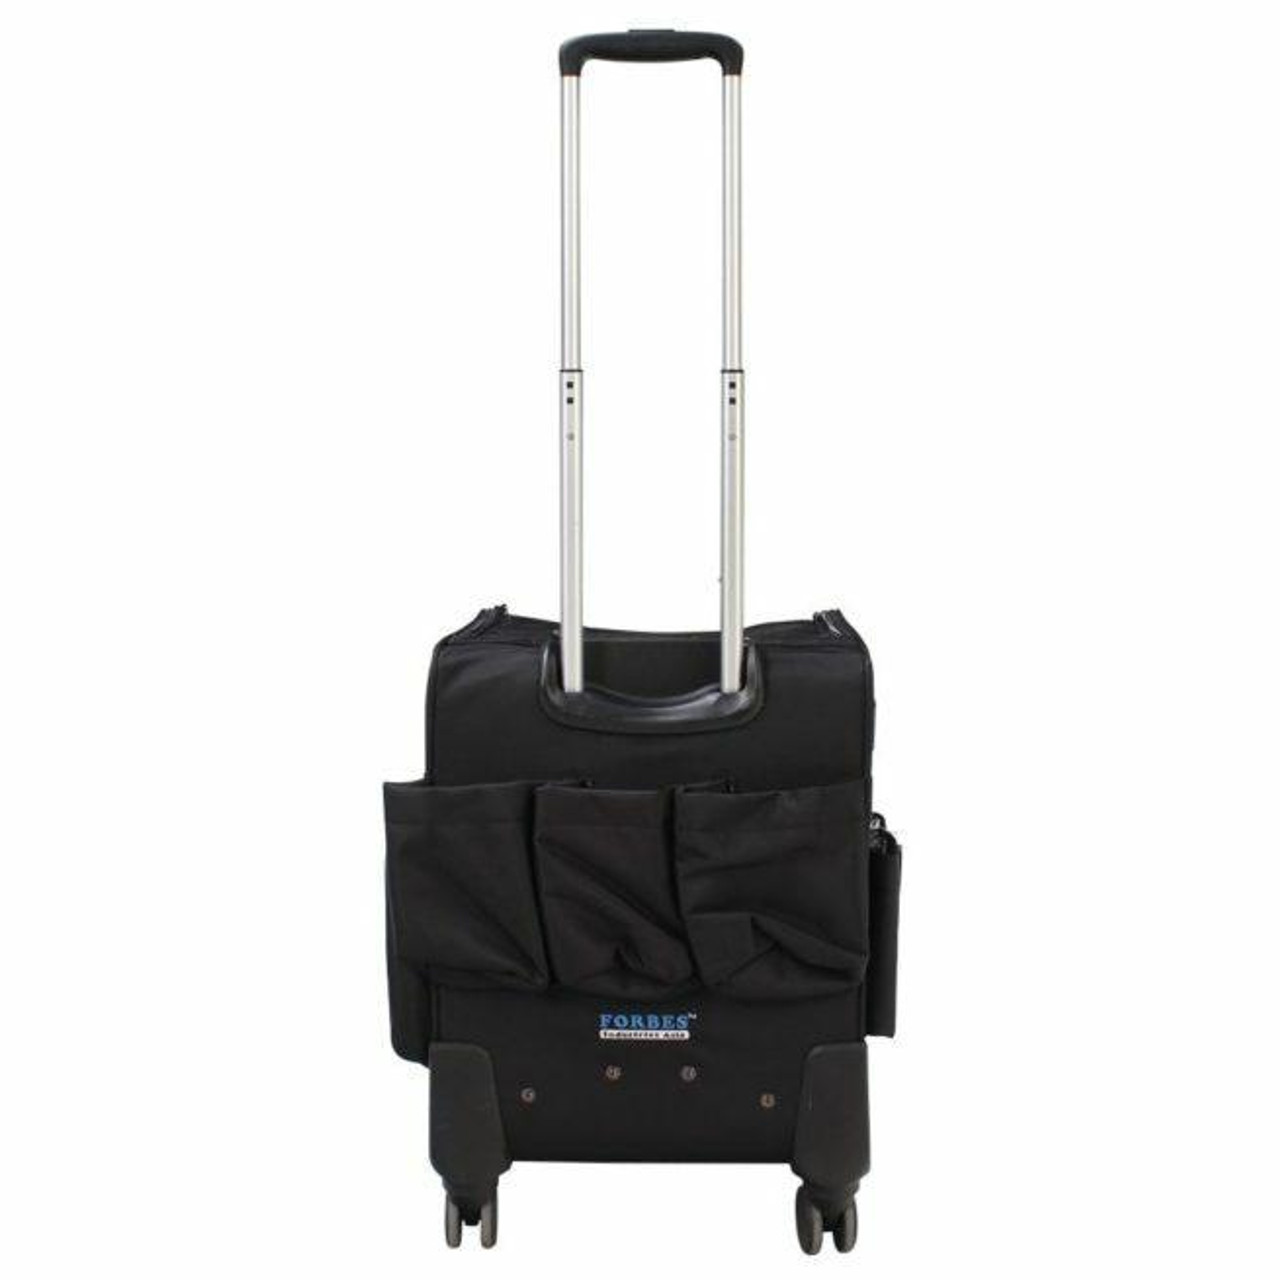 Forbes ForbesIn Room Compact Mini-Roller Housekeeping Cart – 2087